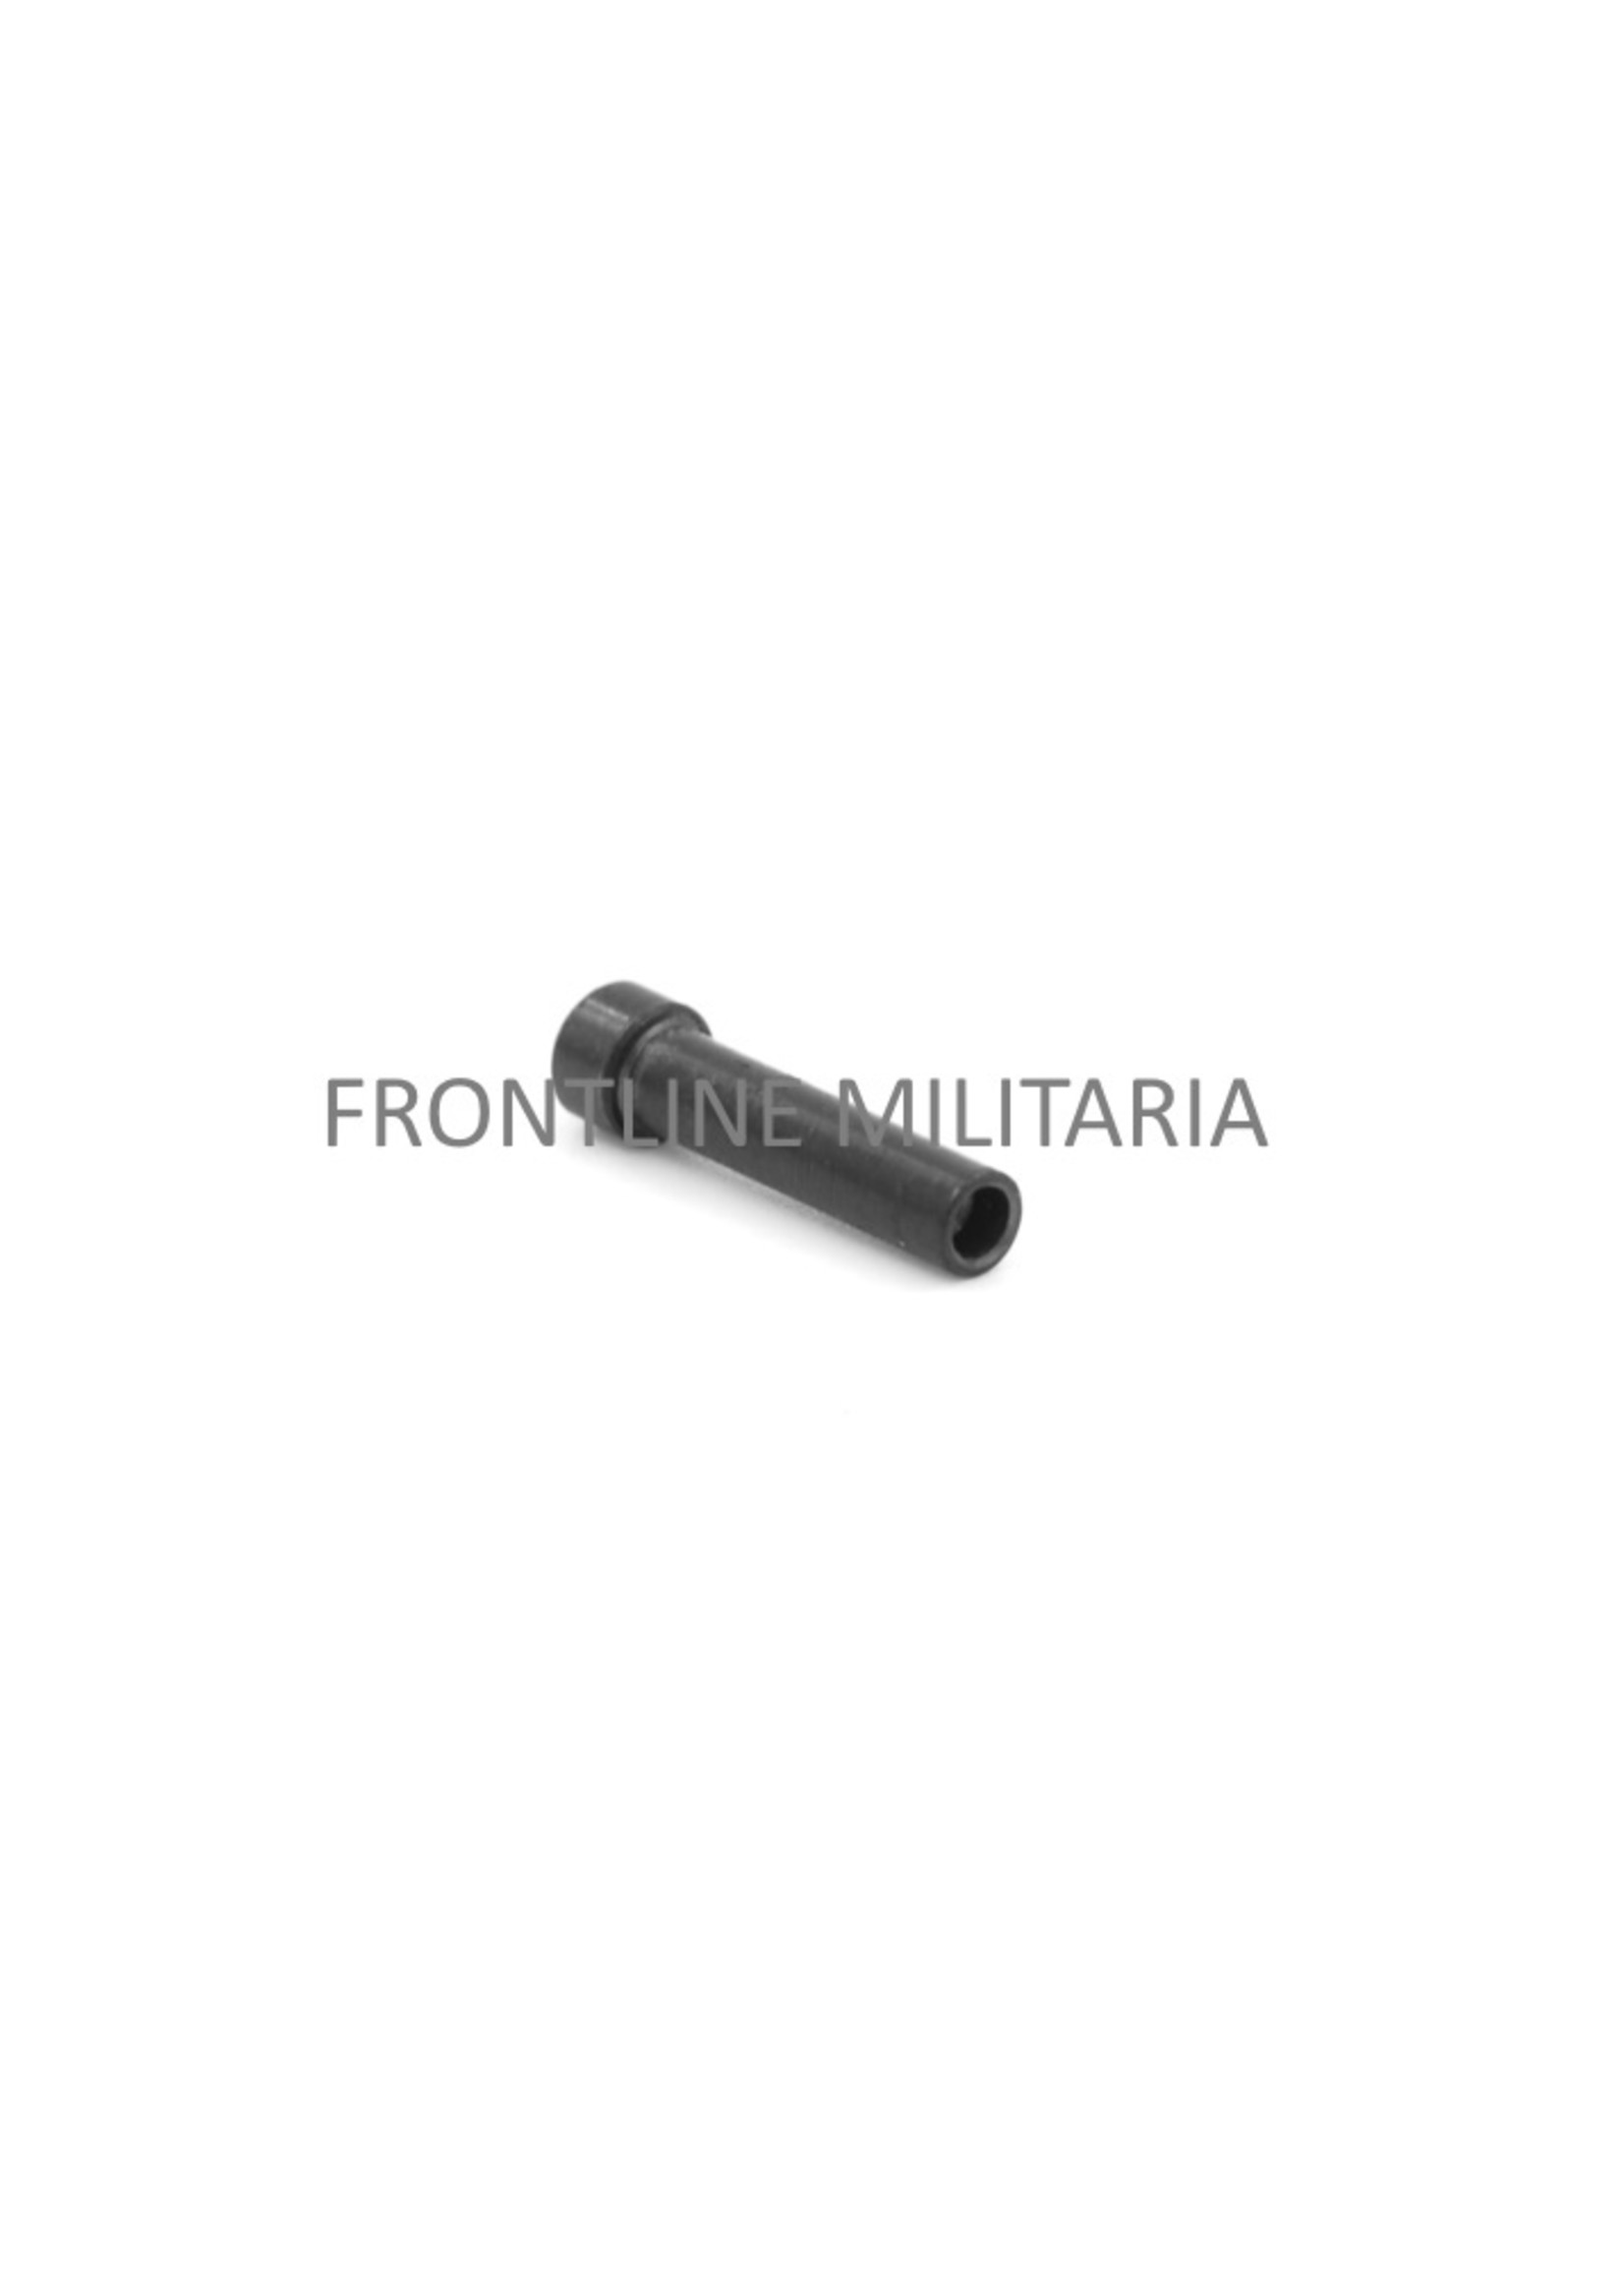 Retainer for firing pin extension for the G43 and K43 Rifle